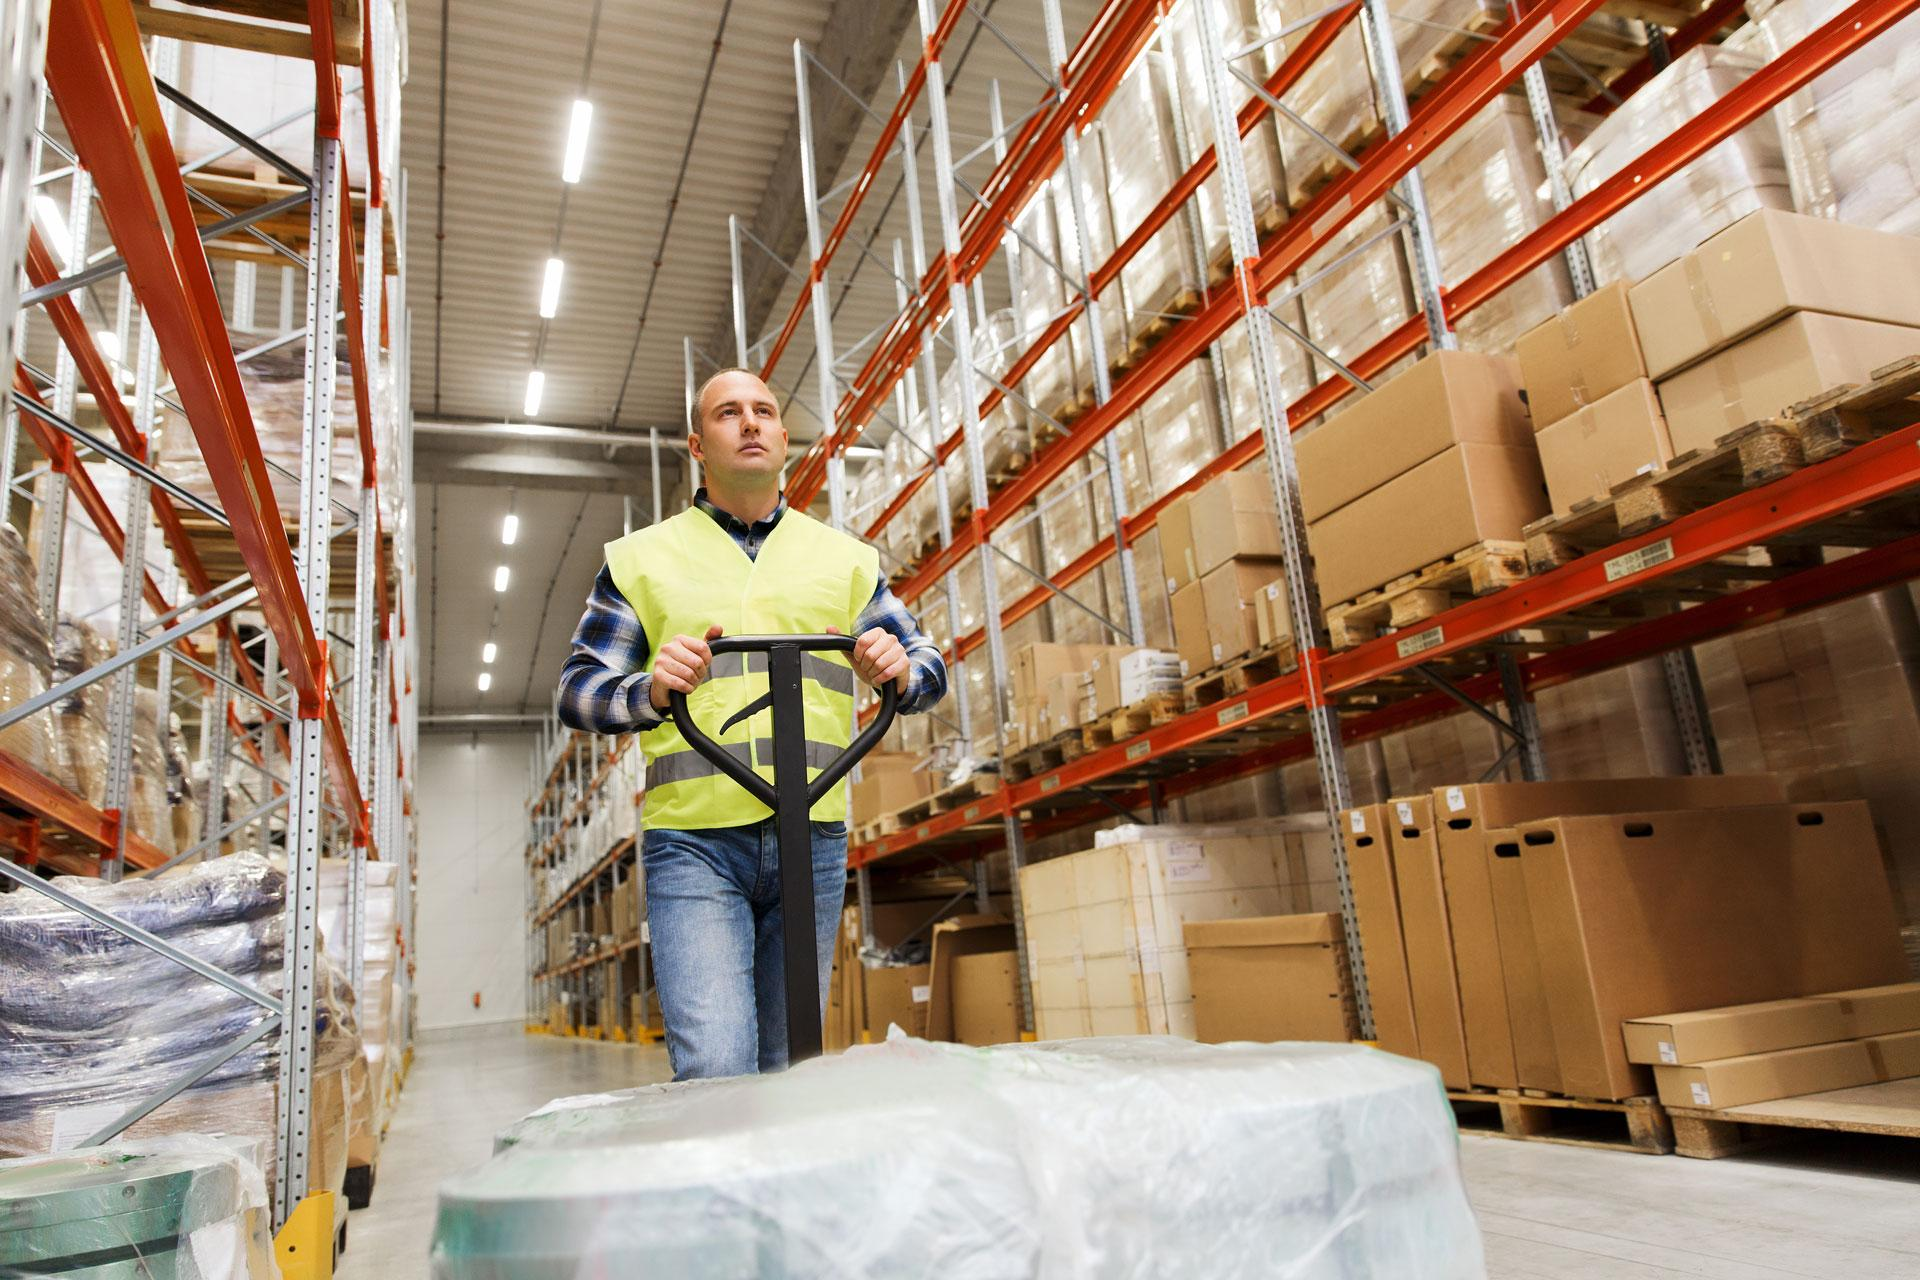 Columbus, Georgia Warehouse Jobs. Looking for Warehouse Jobs in Columbus, Georgia? See currently available Warehouse job openings in Columbus, Georgia on puraconga.ml Browse the current listings and fill out job applications. puraconga.ml is the starting point for a job search in any warehouse job in .